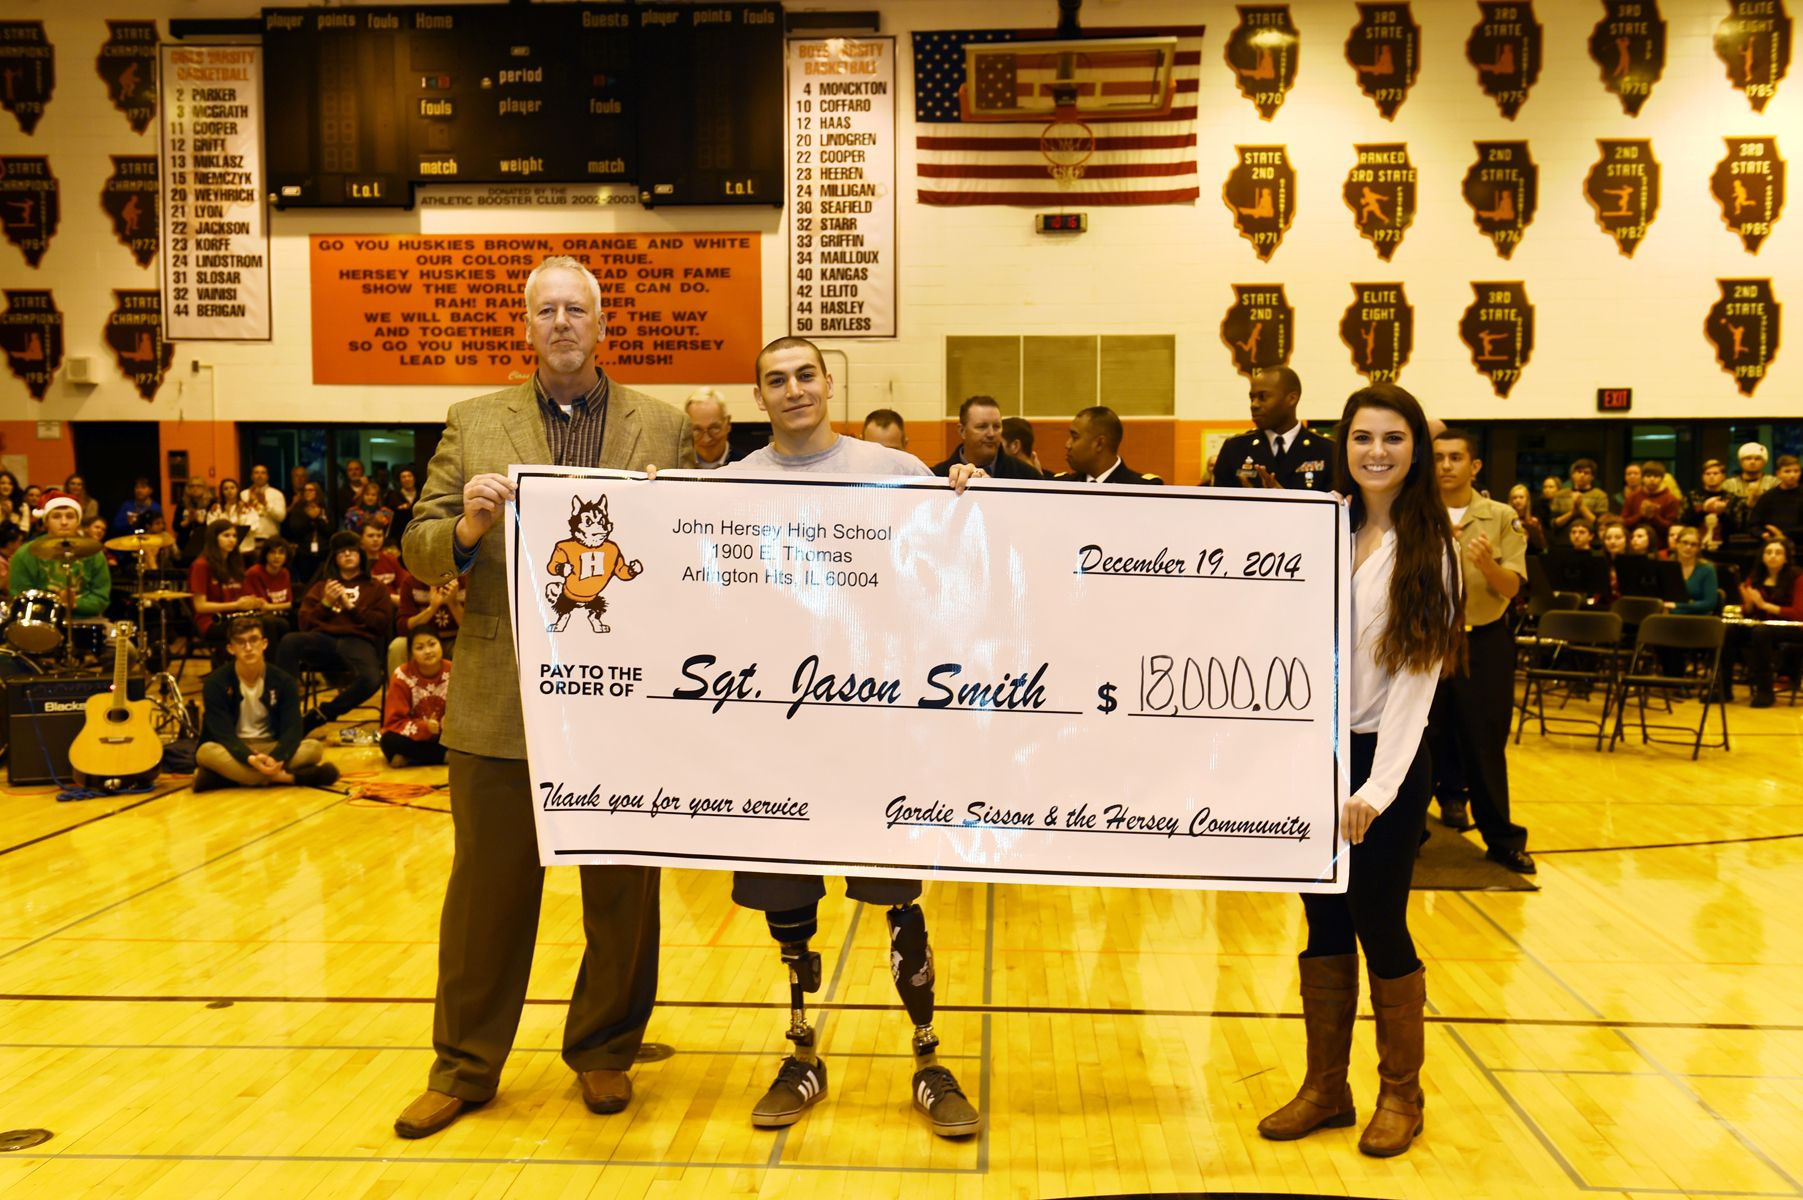 Donation being presented to Sgt. Smith